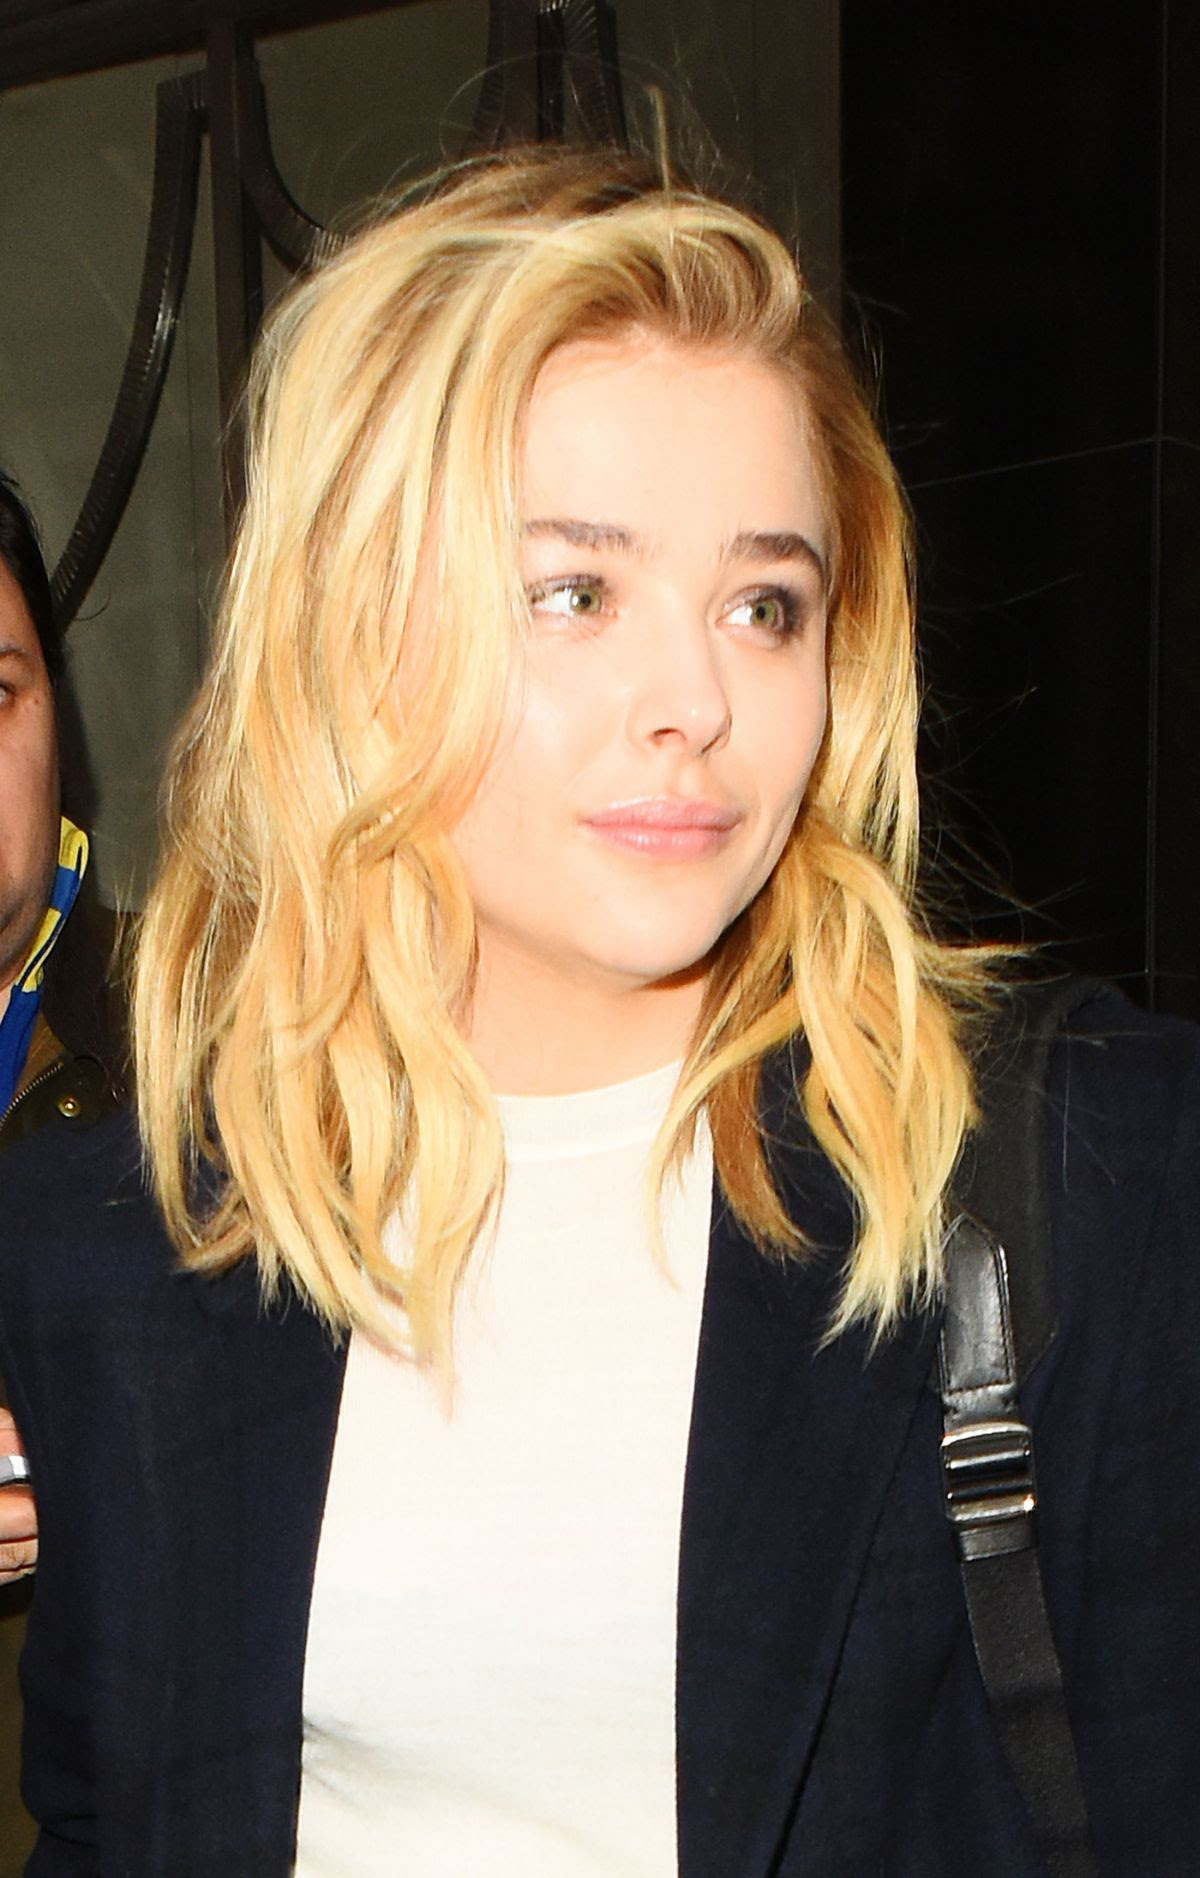 CHLOE MORETZ Leaves Claridges Hotel in London 04/25/2016